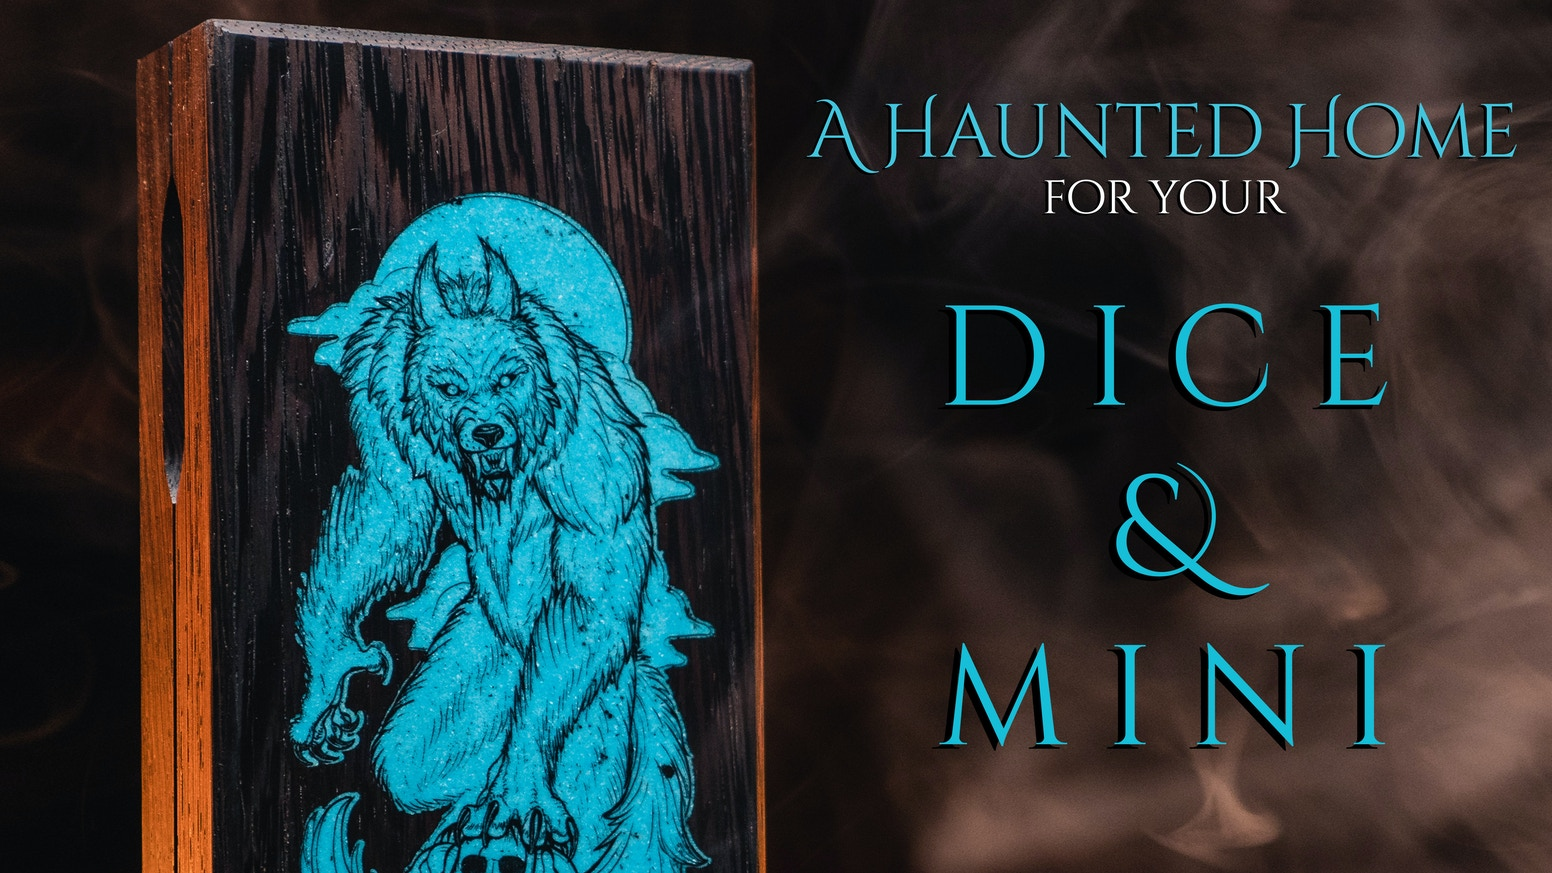 Keep your mini and dice safe from the horrors of Halloween!